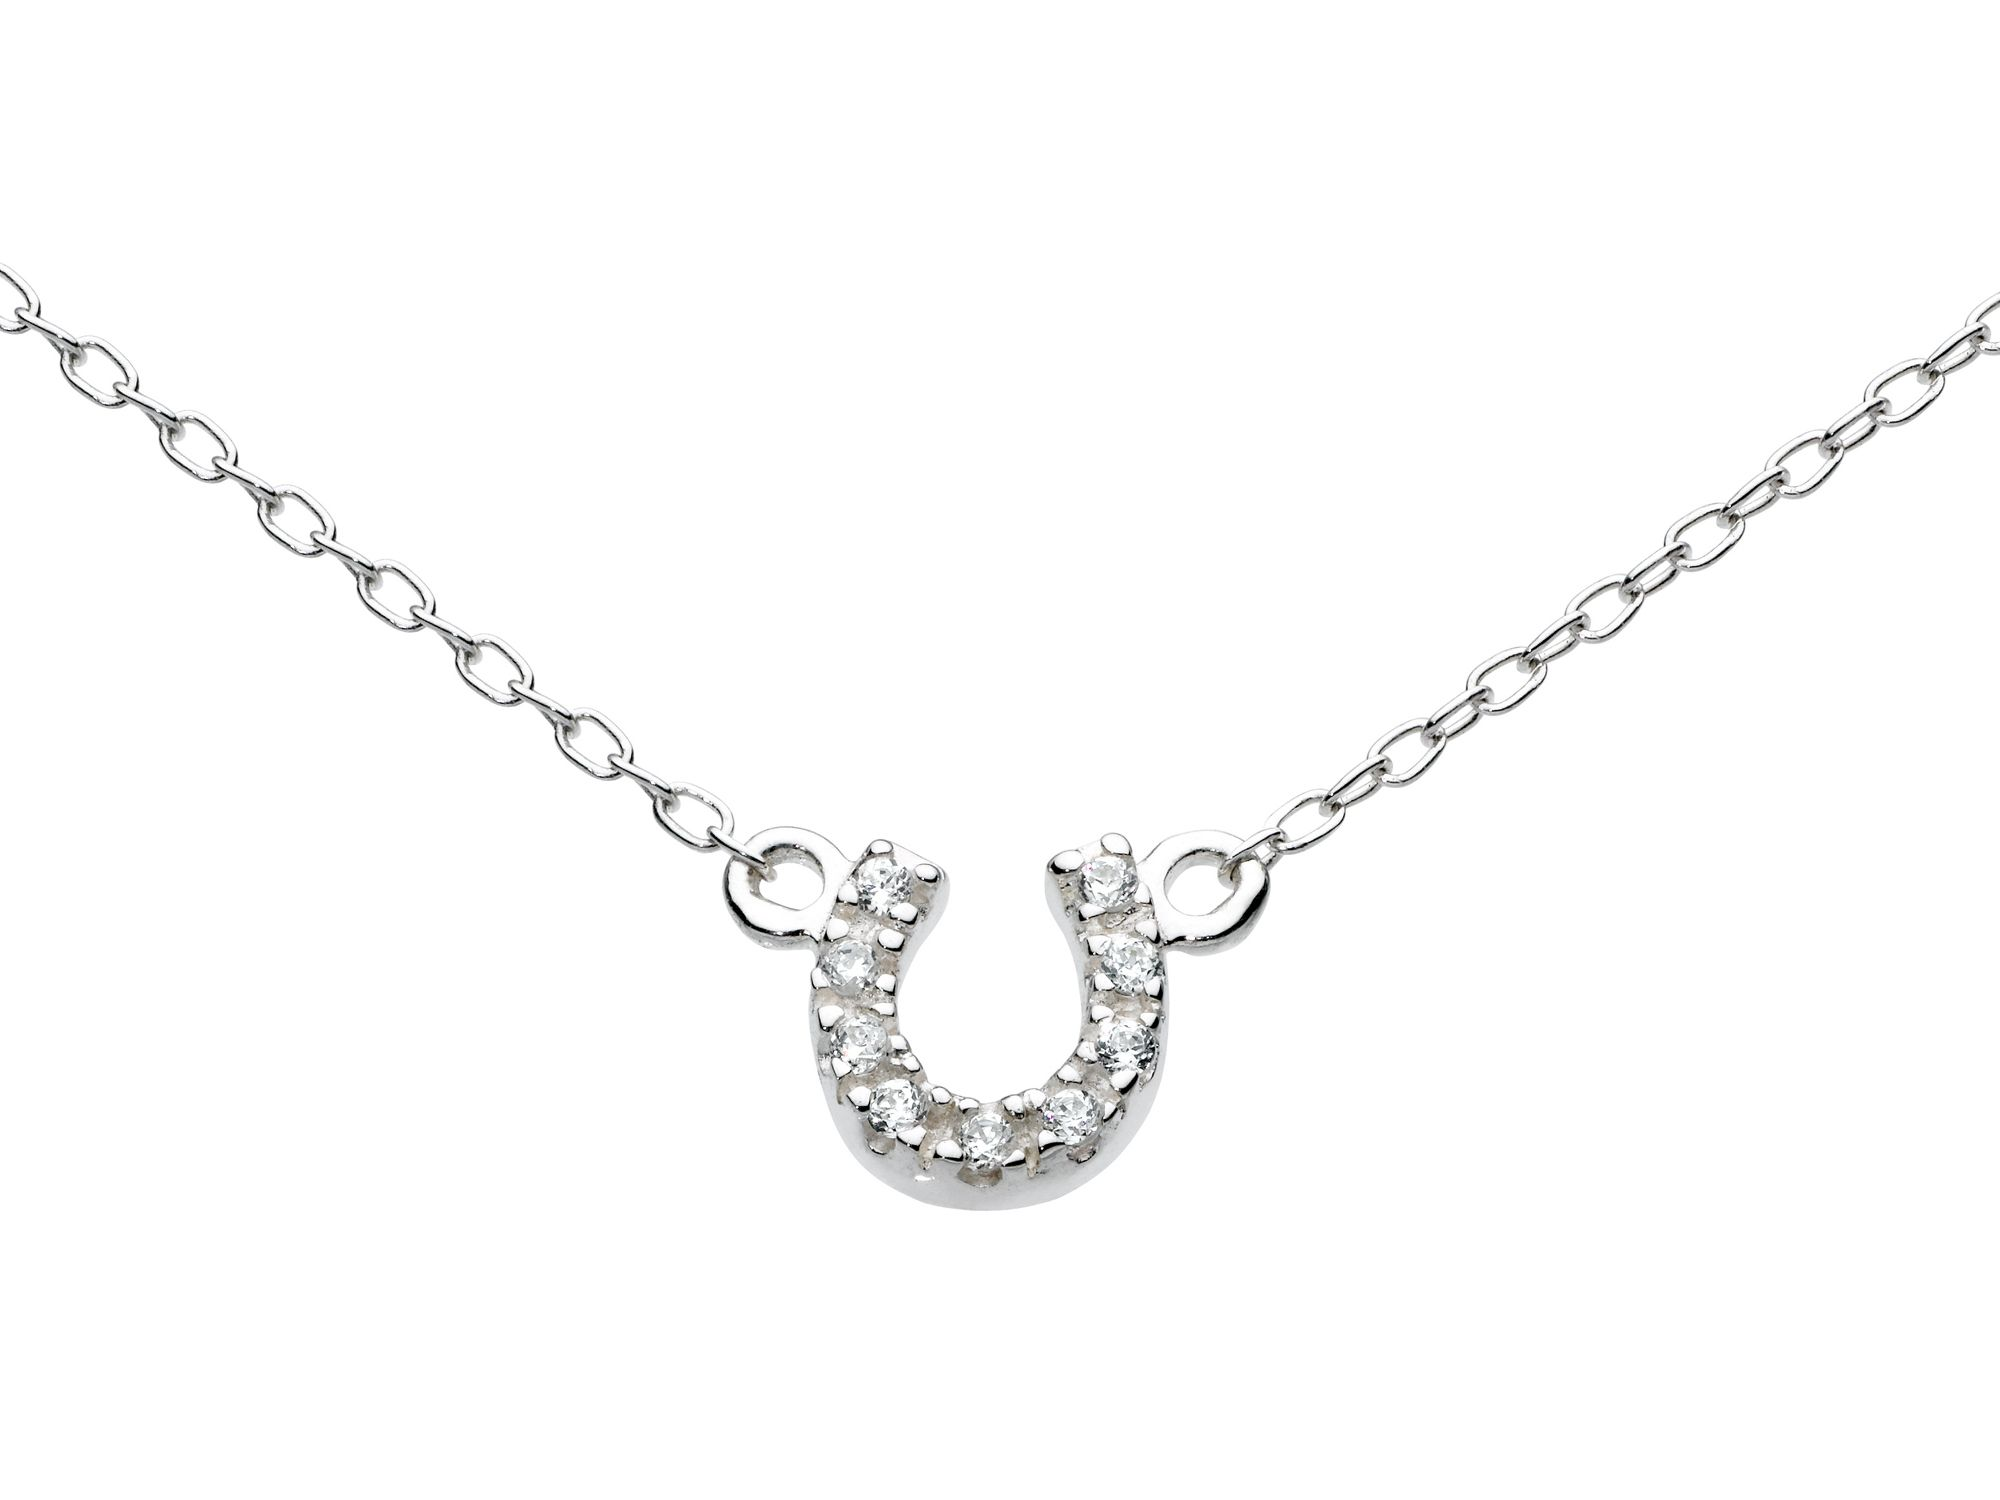 Sterling silver mini pave horseshoe necklace